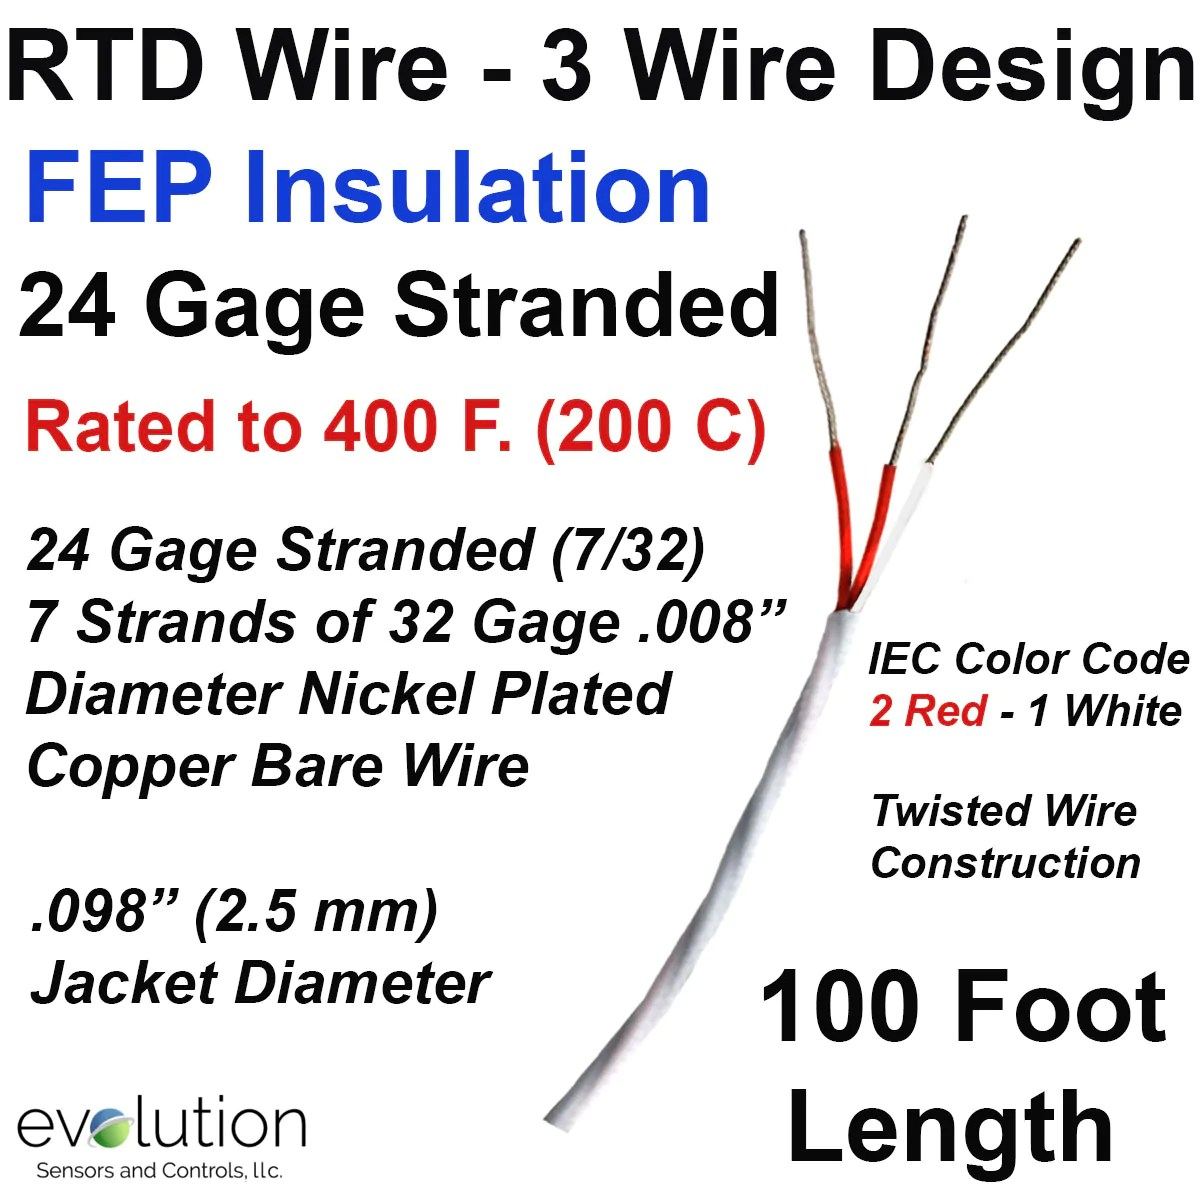 rtd wiring color code wiring diagram page 3 wire rtd wiring color code rtd wiring color code [ 1200 x 1200 Pixel ]